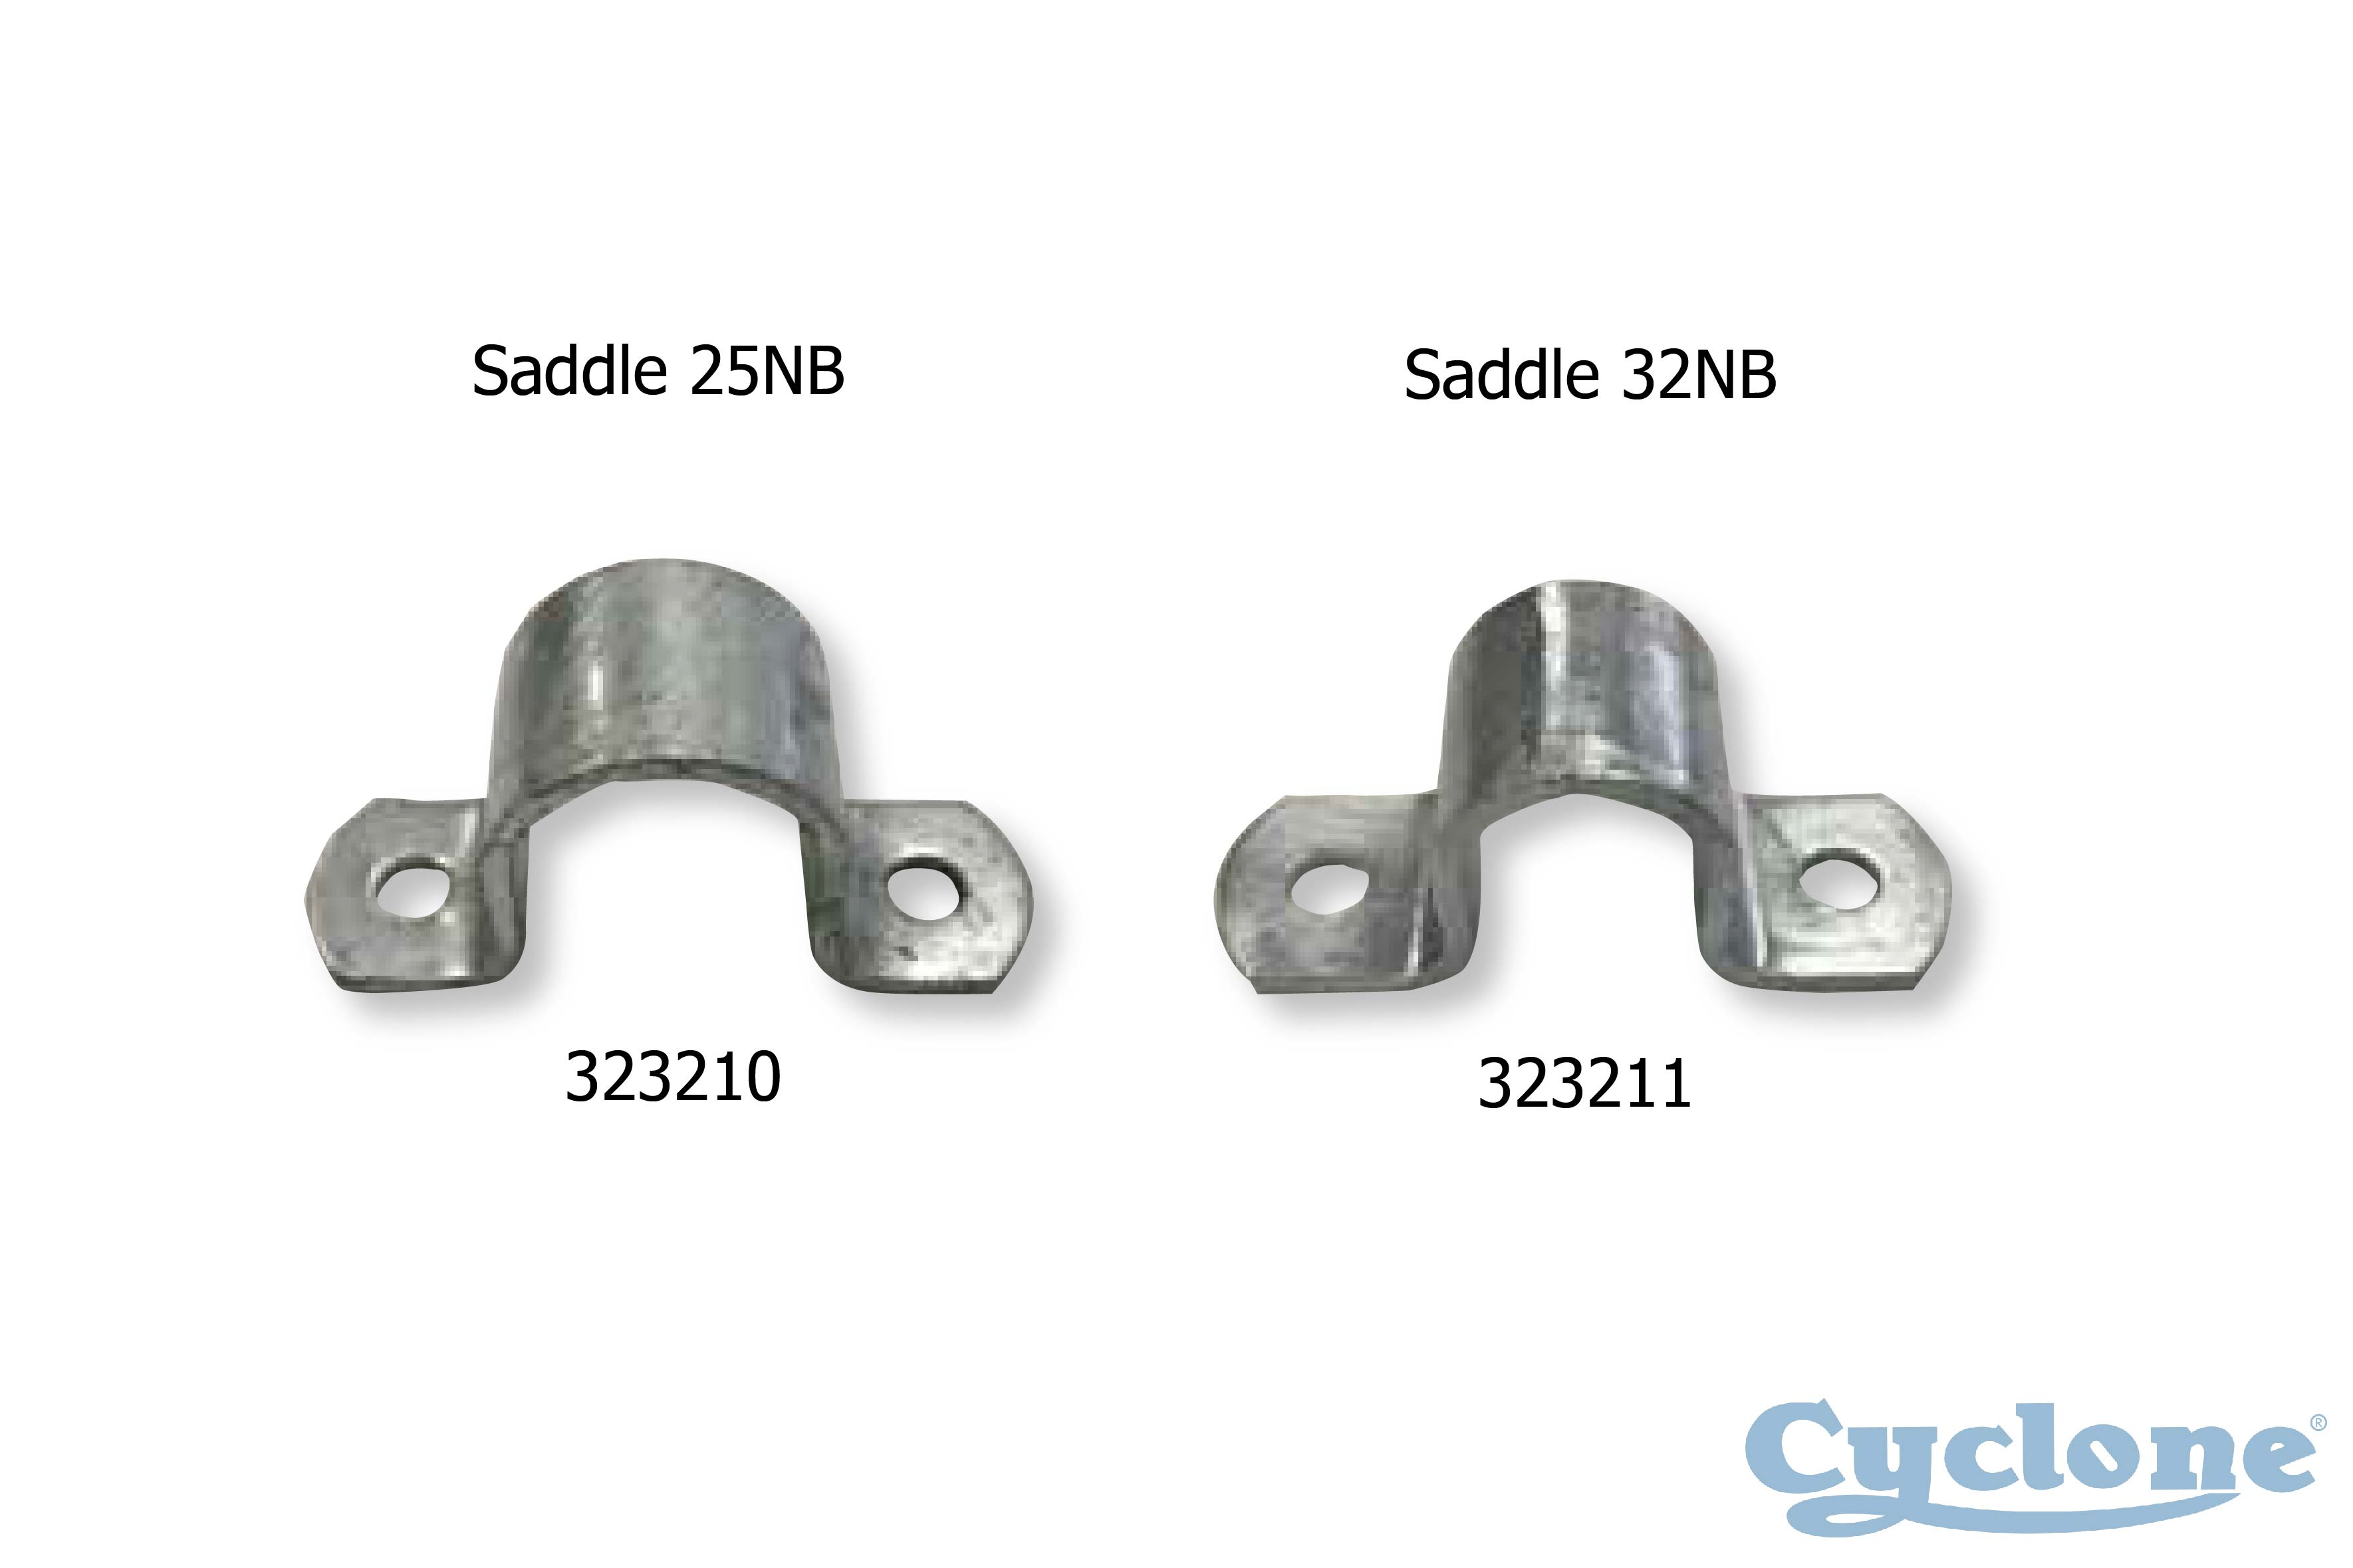 Cyclone gate fittings